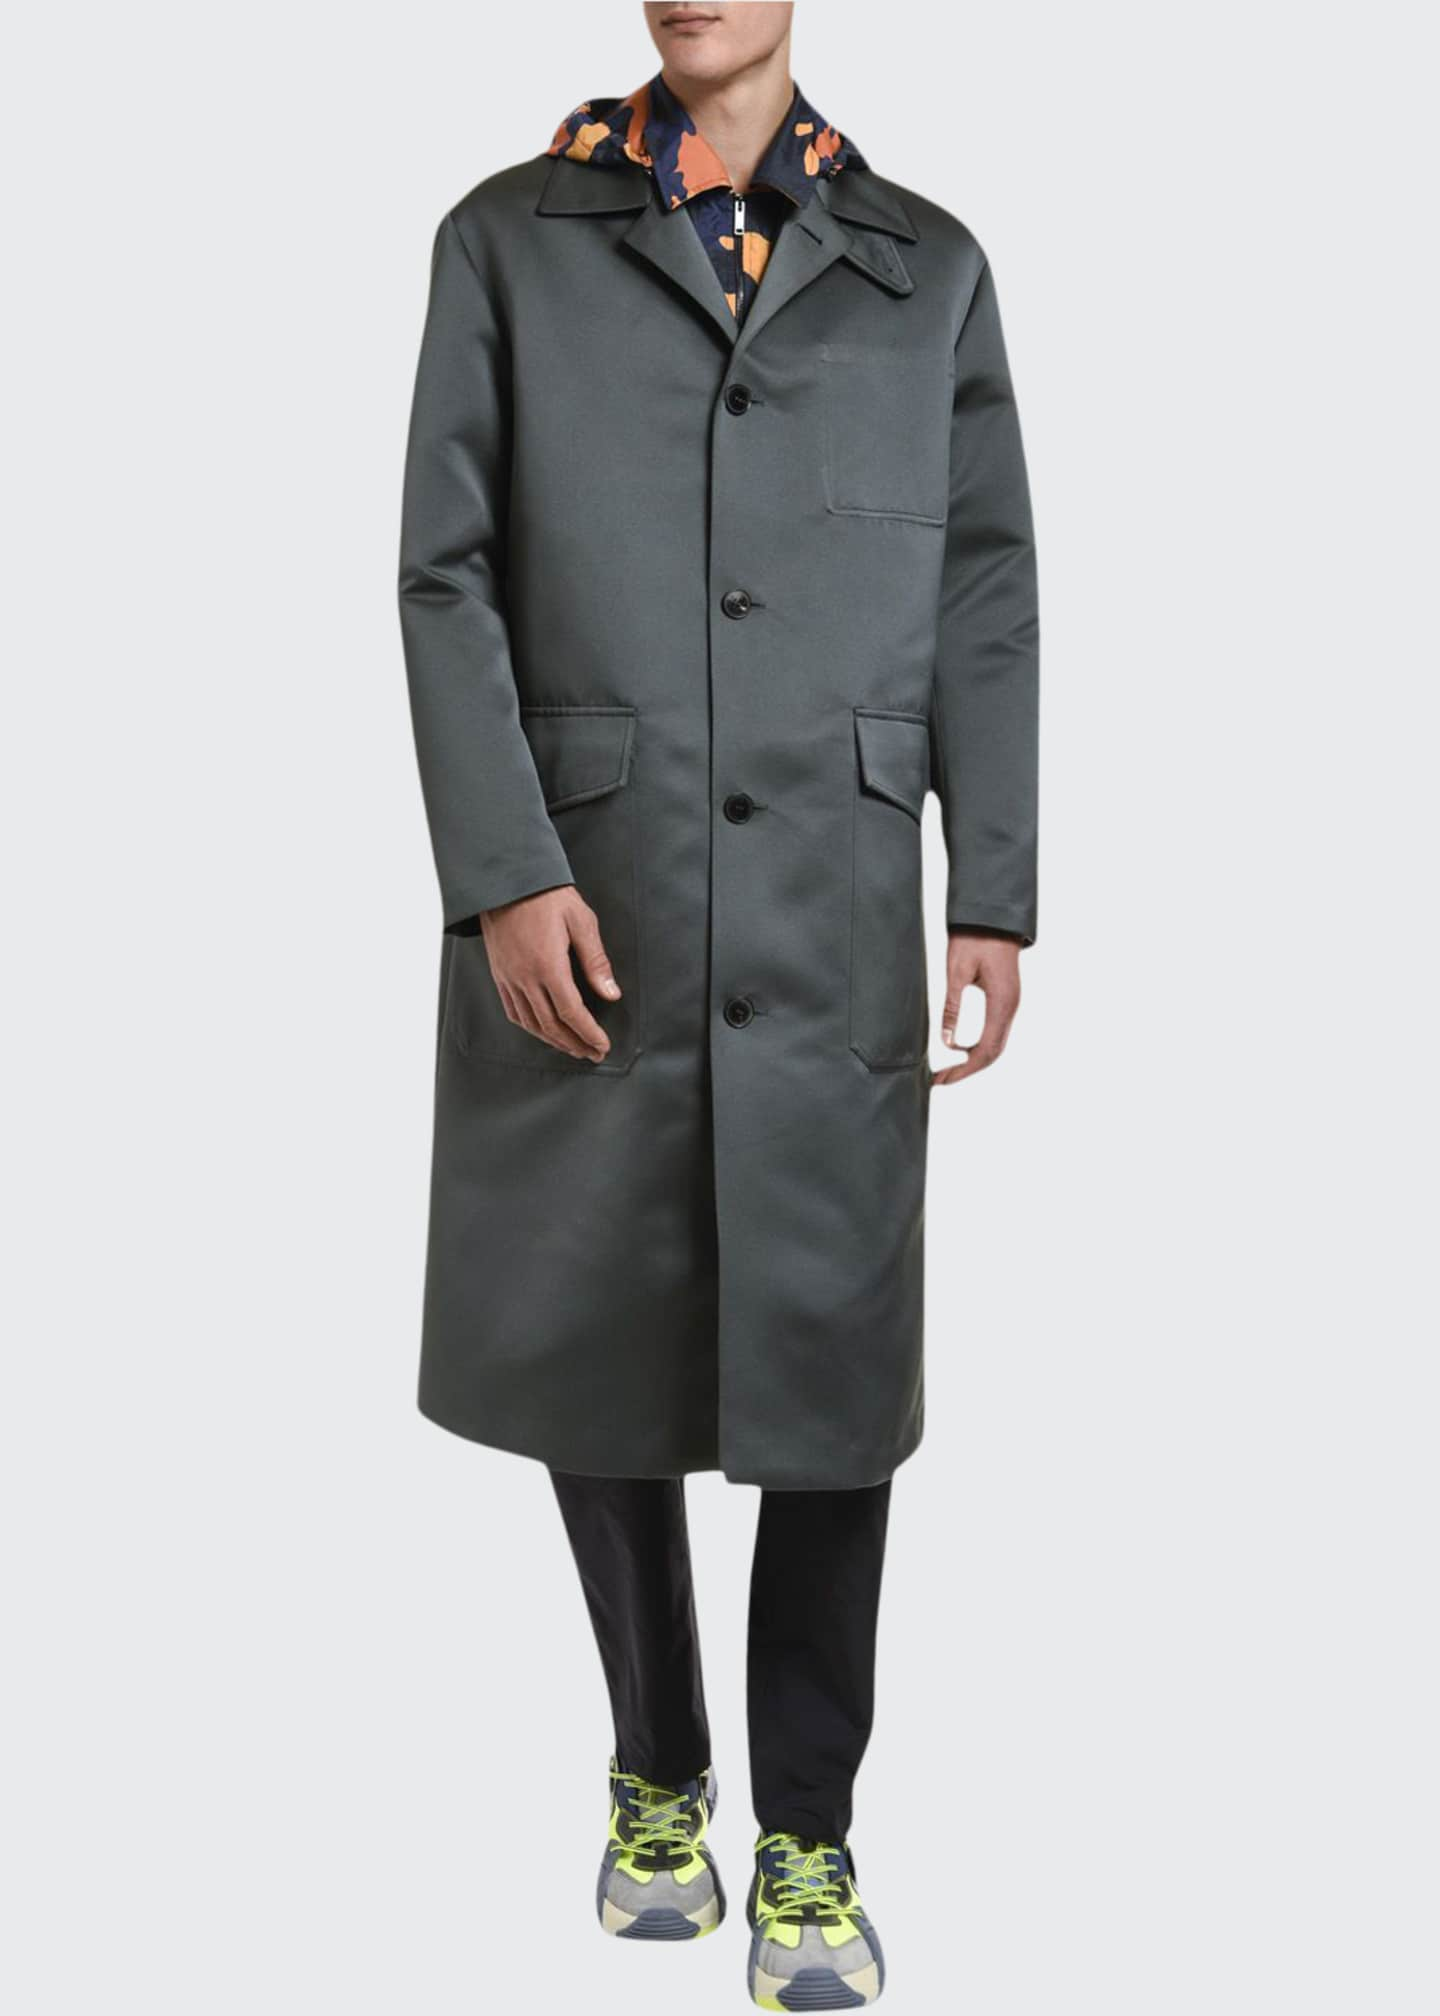 Image 1 of 3: Men's Knee-Length Satin Overcoat